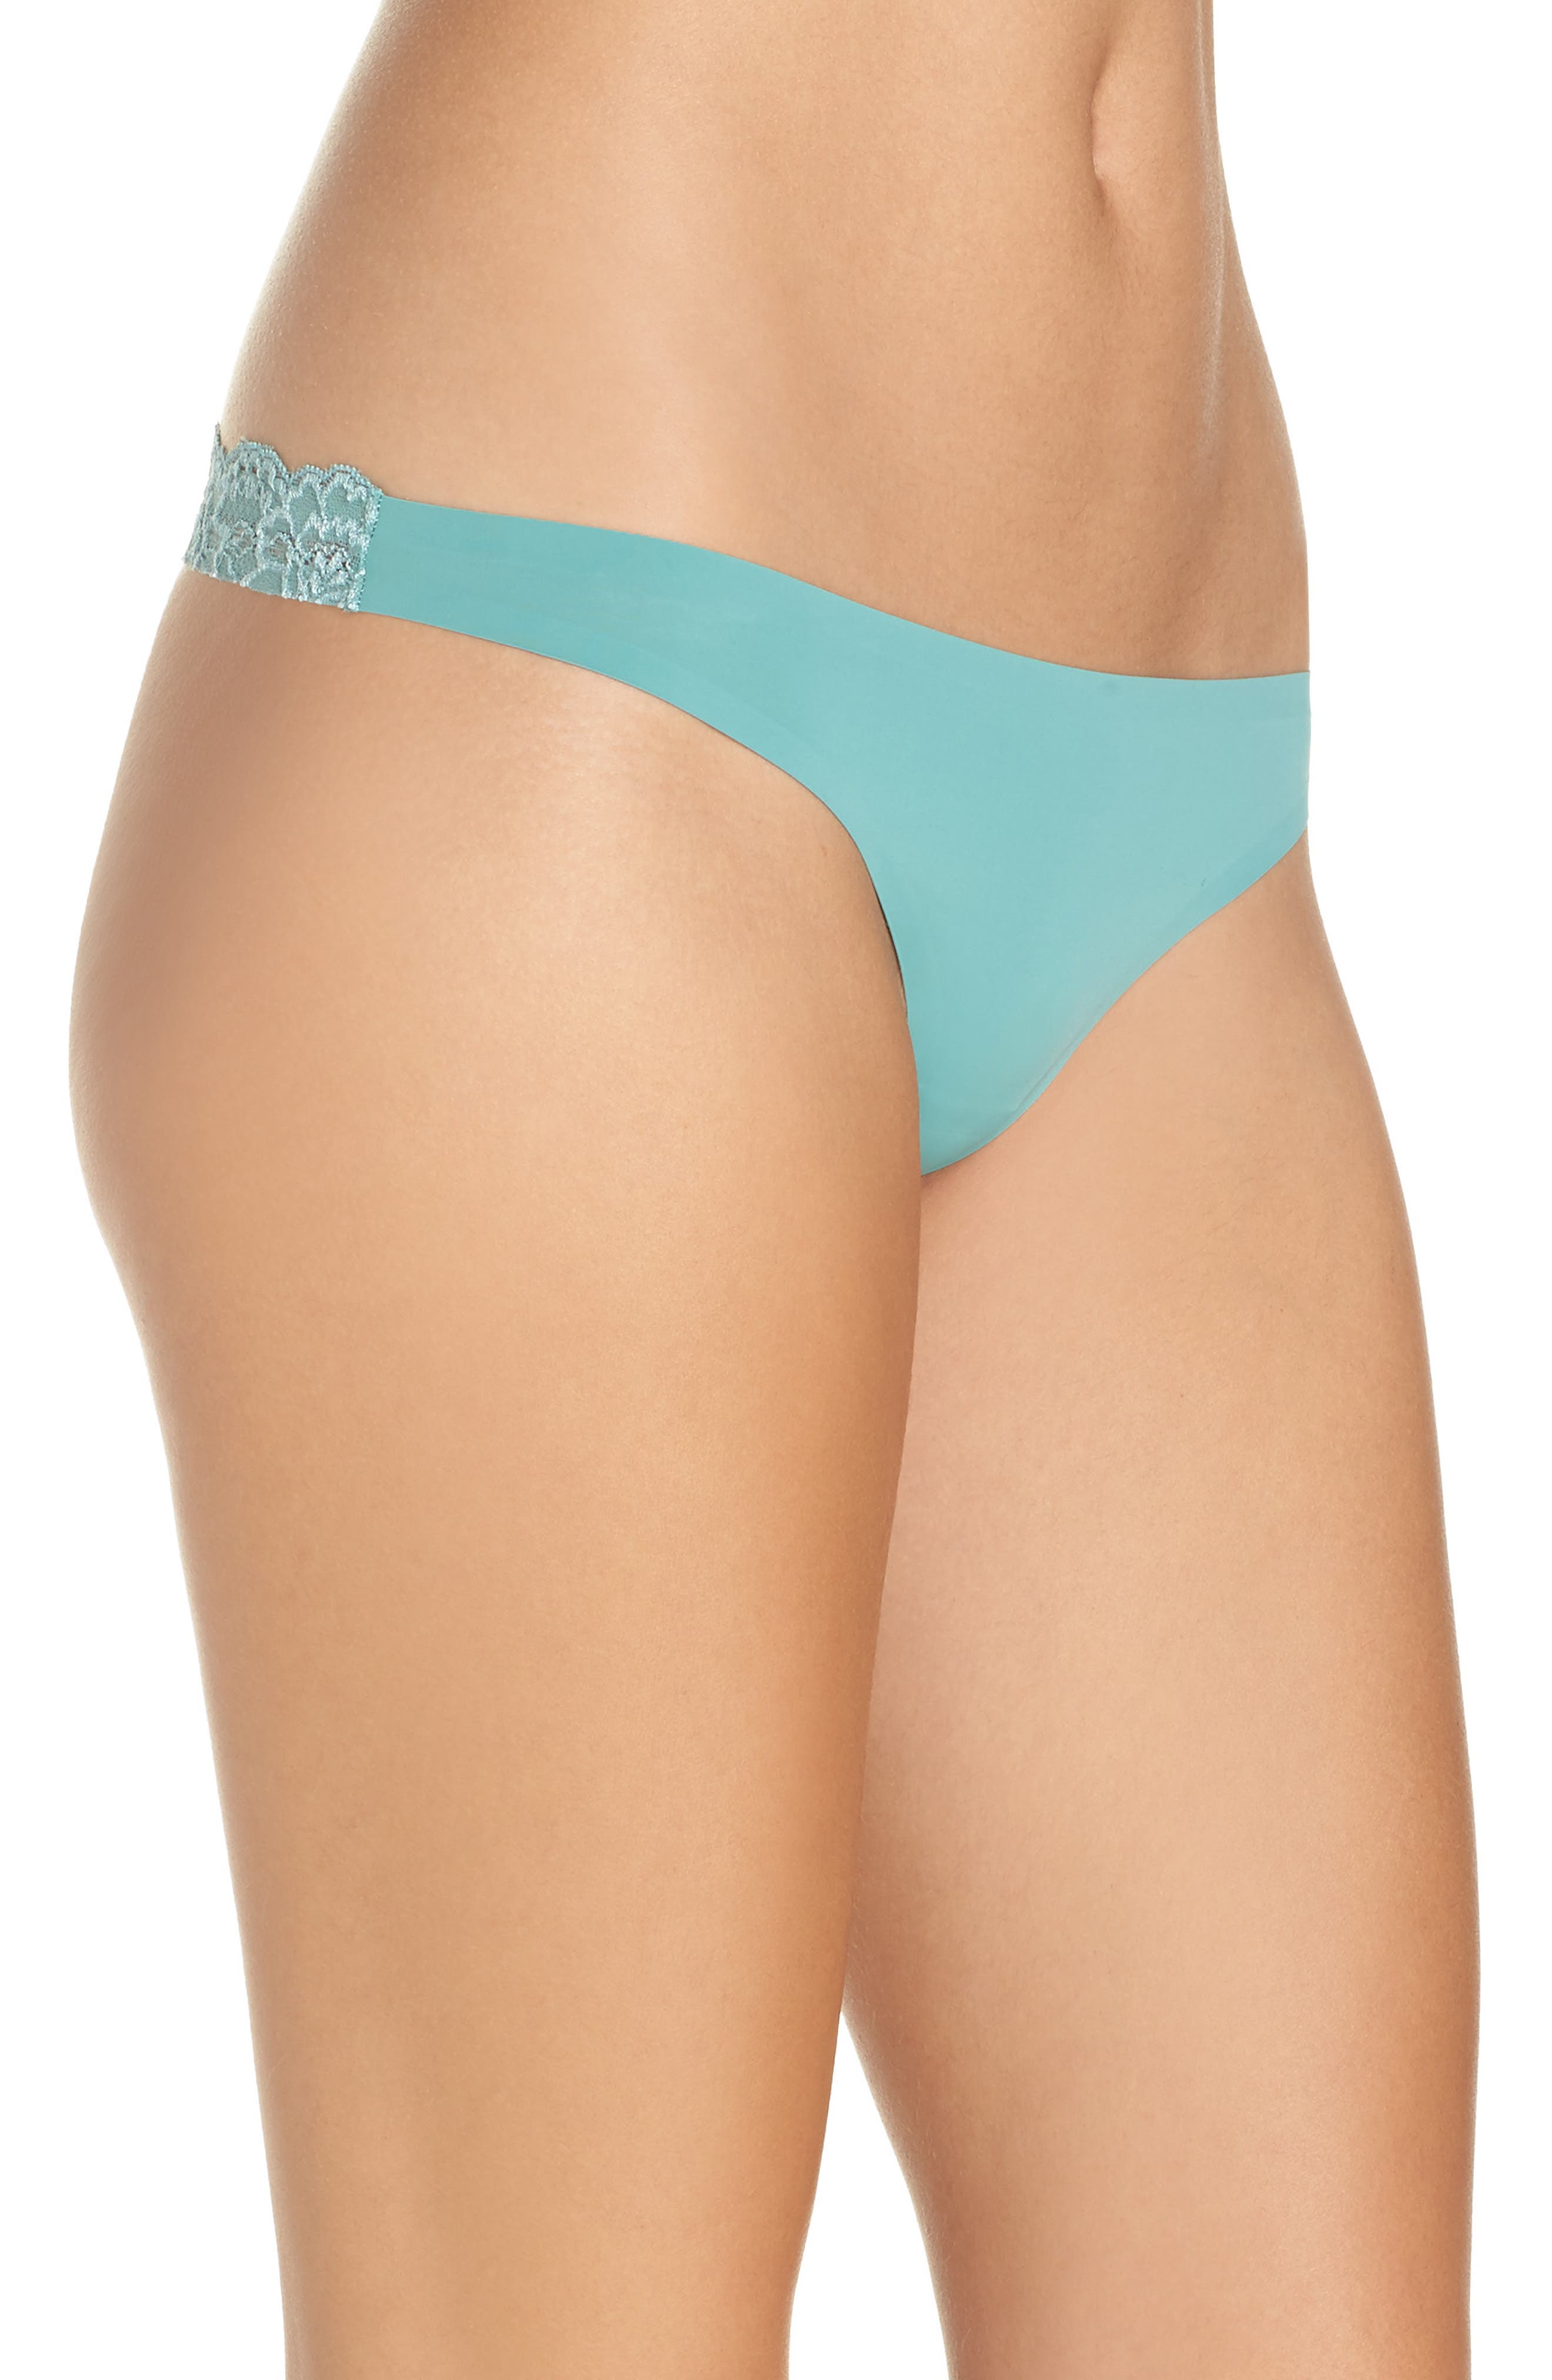 Intimately FP Smooth Thong,                             Alternate thumbnail 3, color,                             Mint